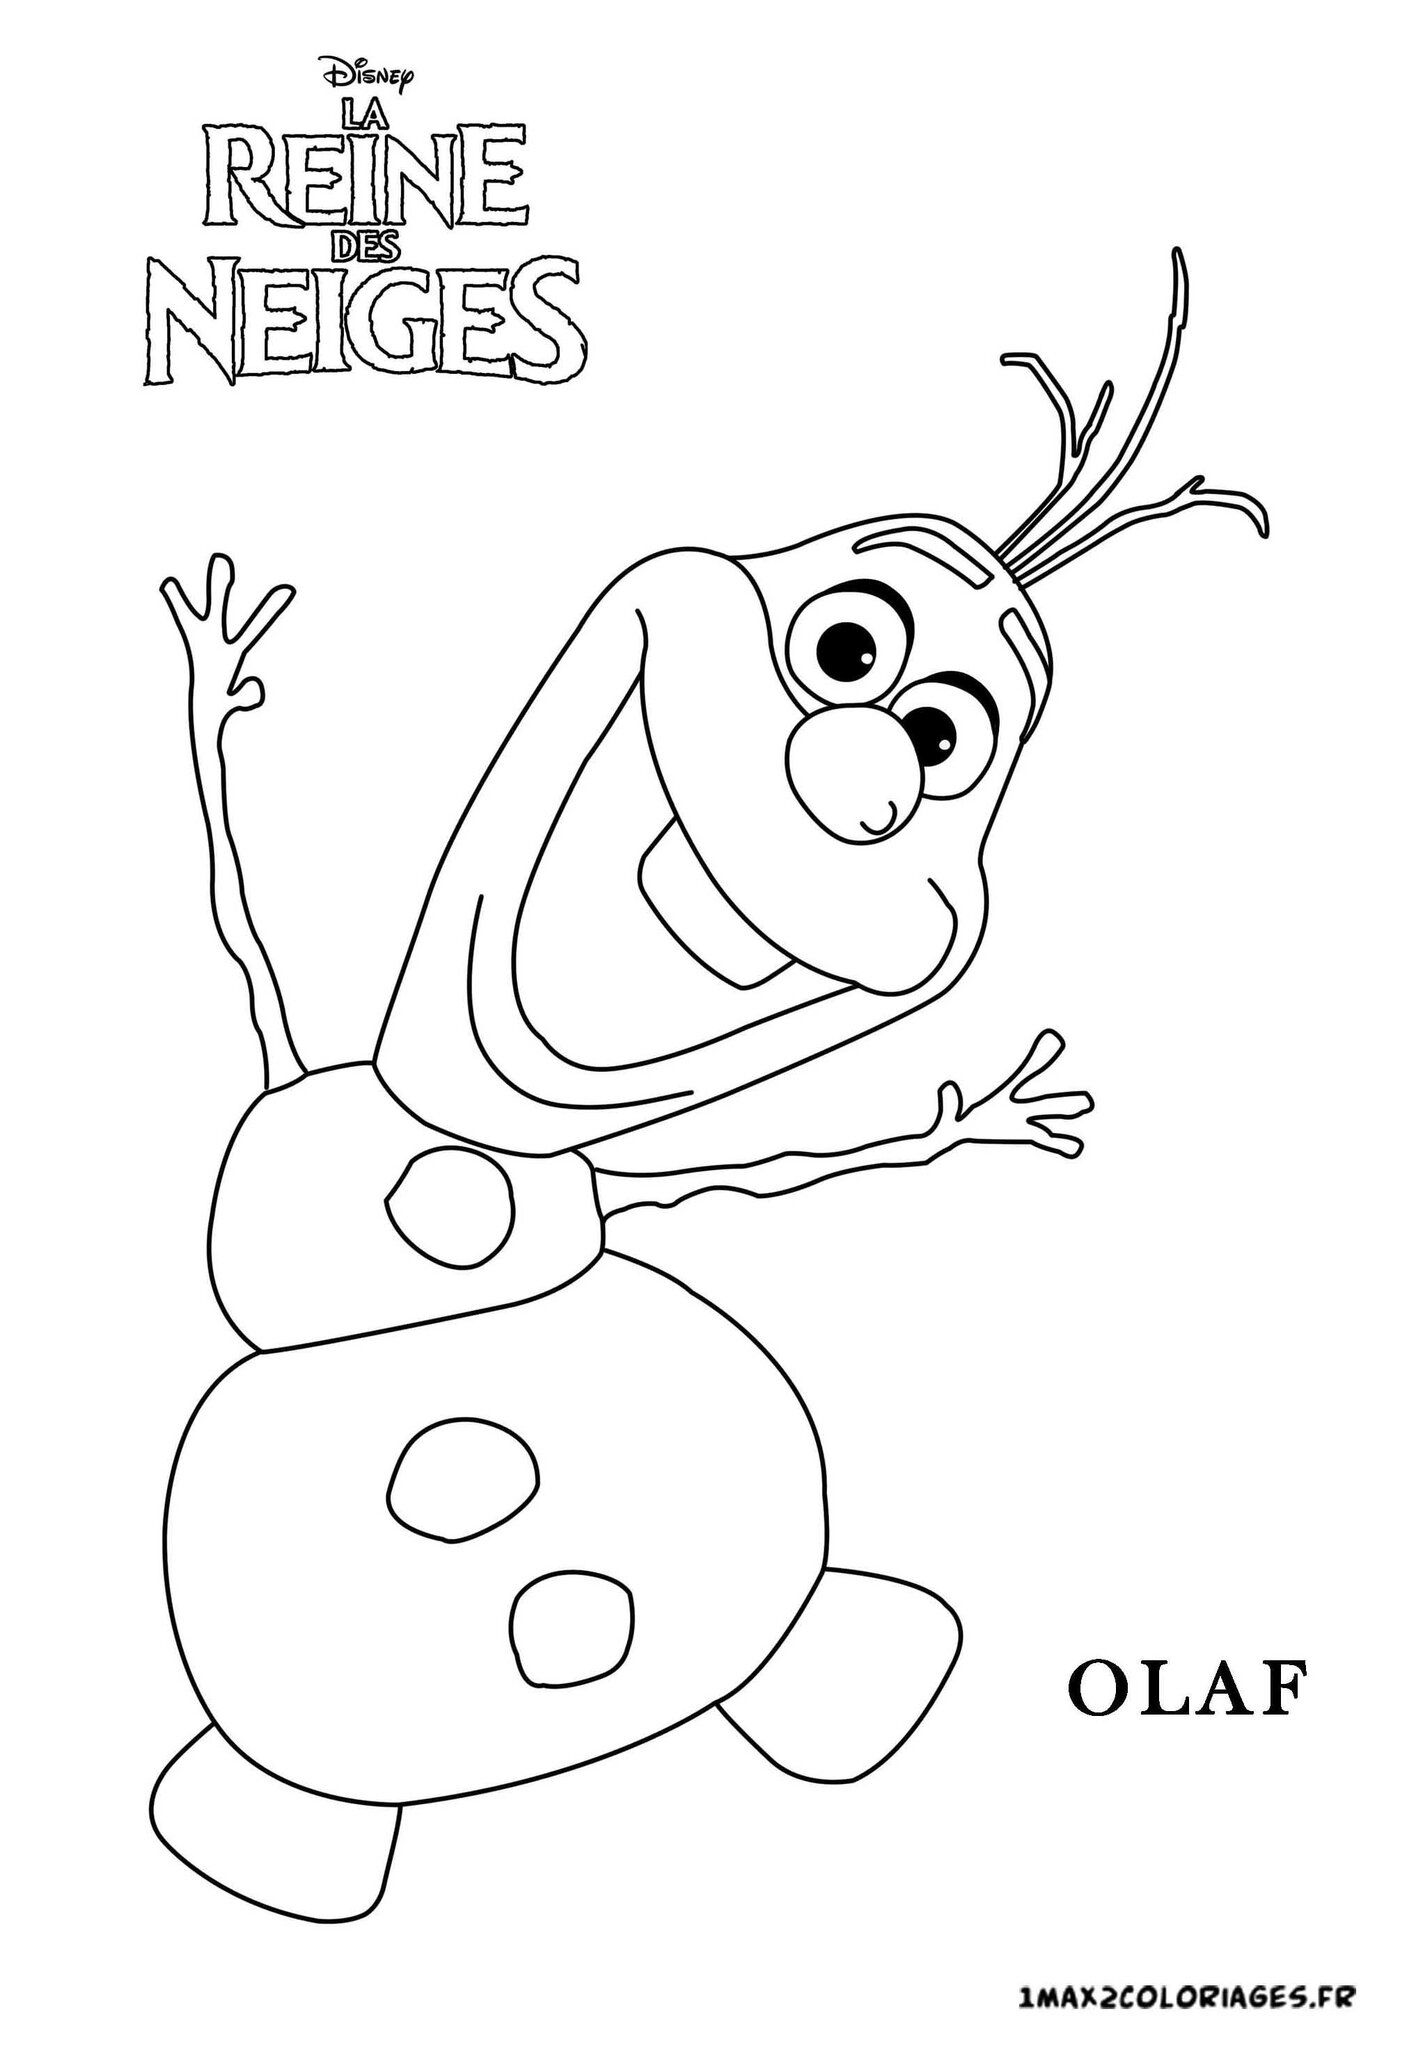 olafs face coloring pages - photo#21